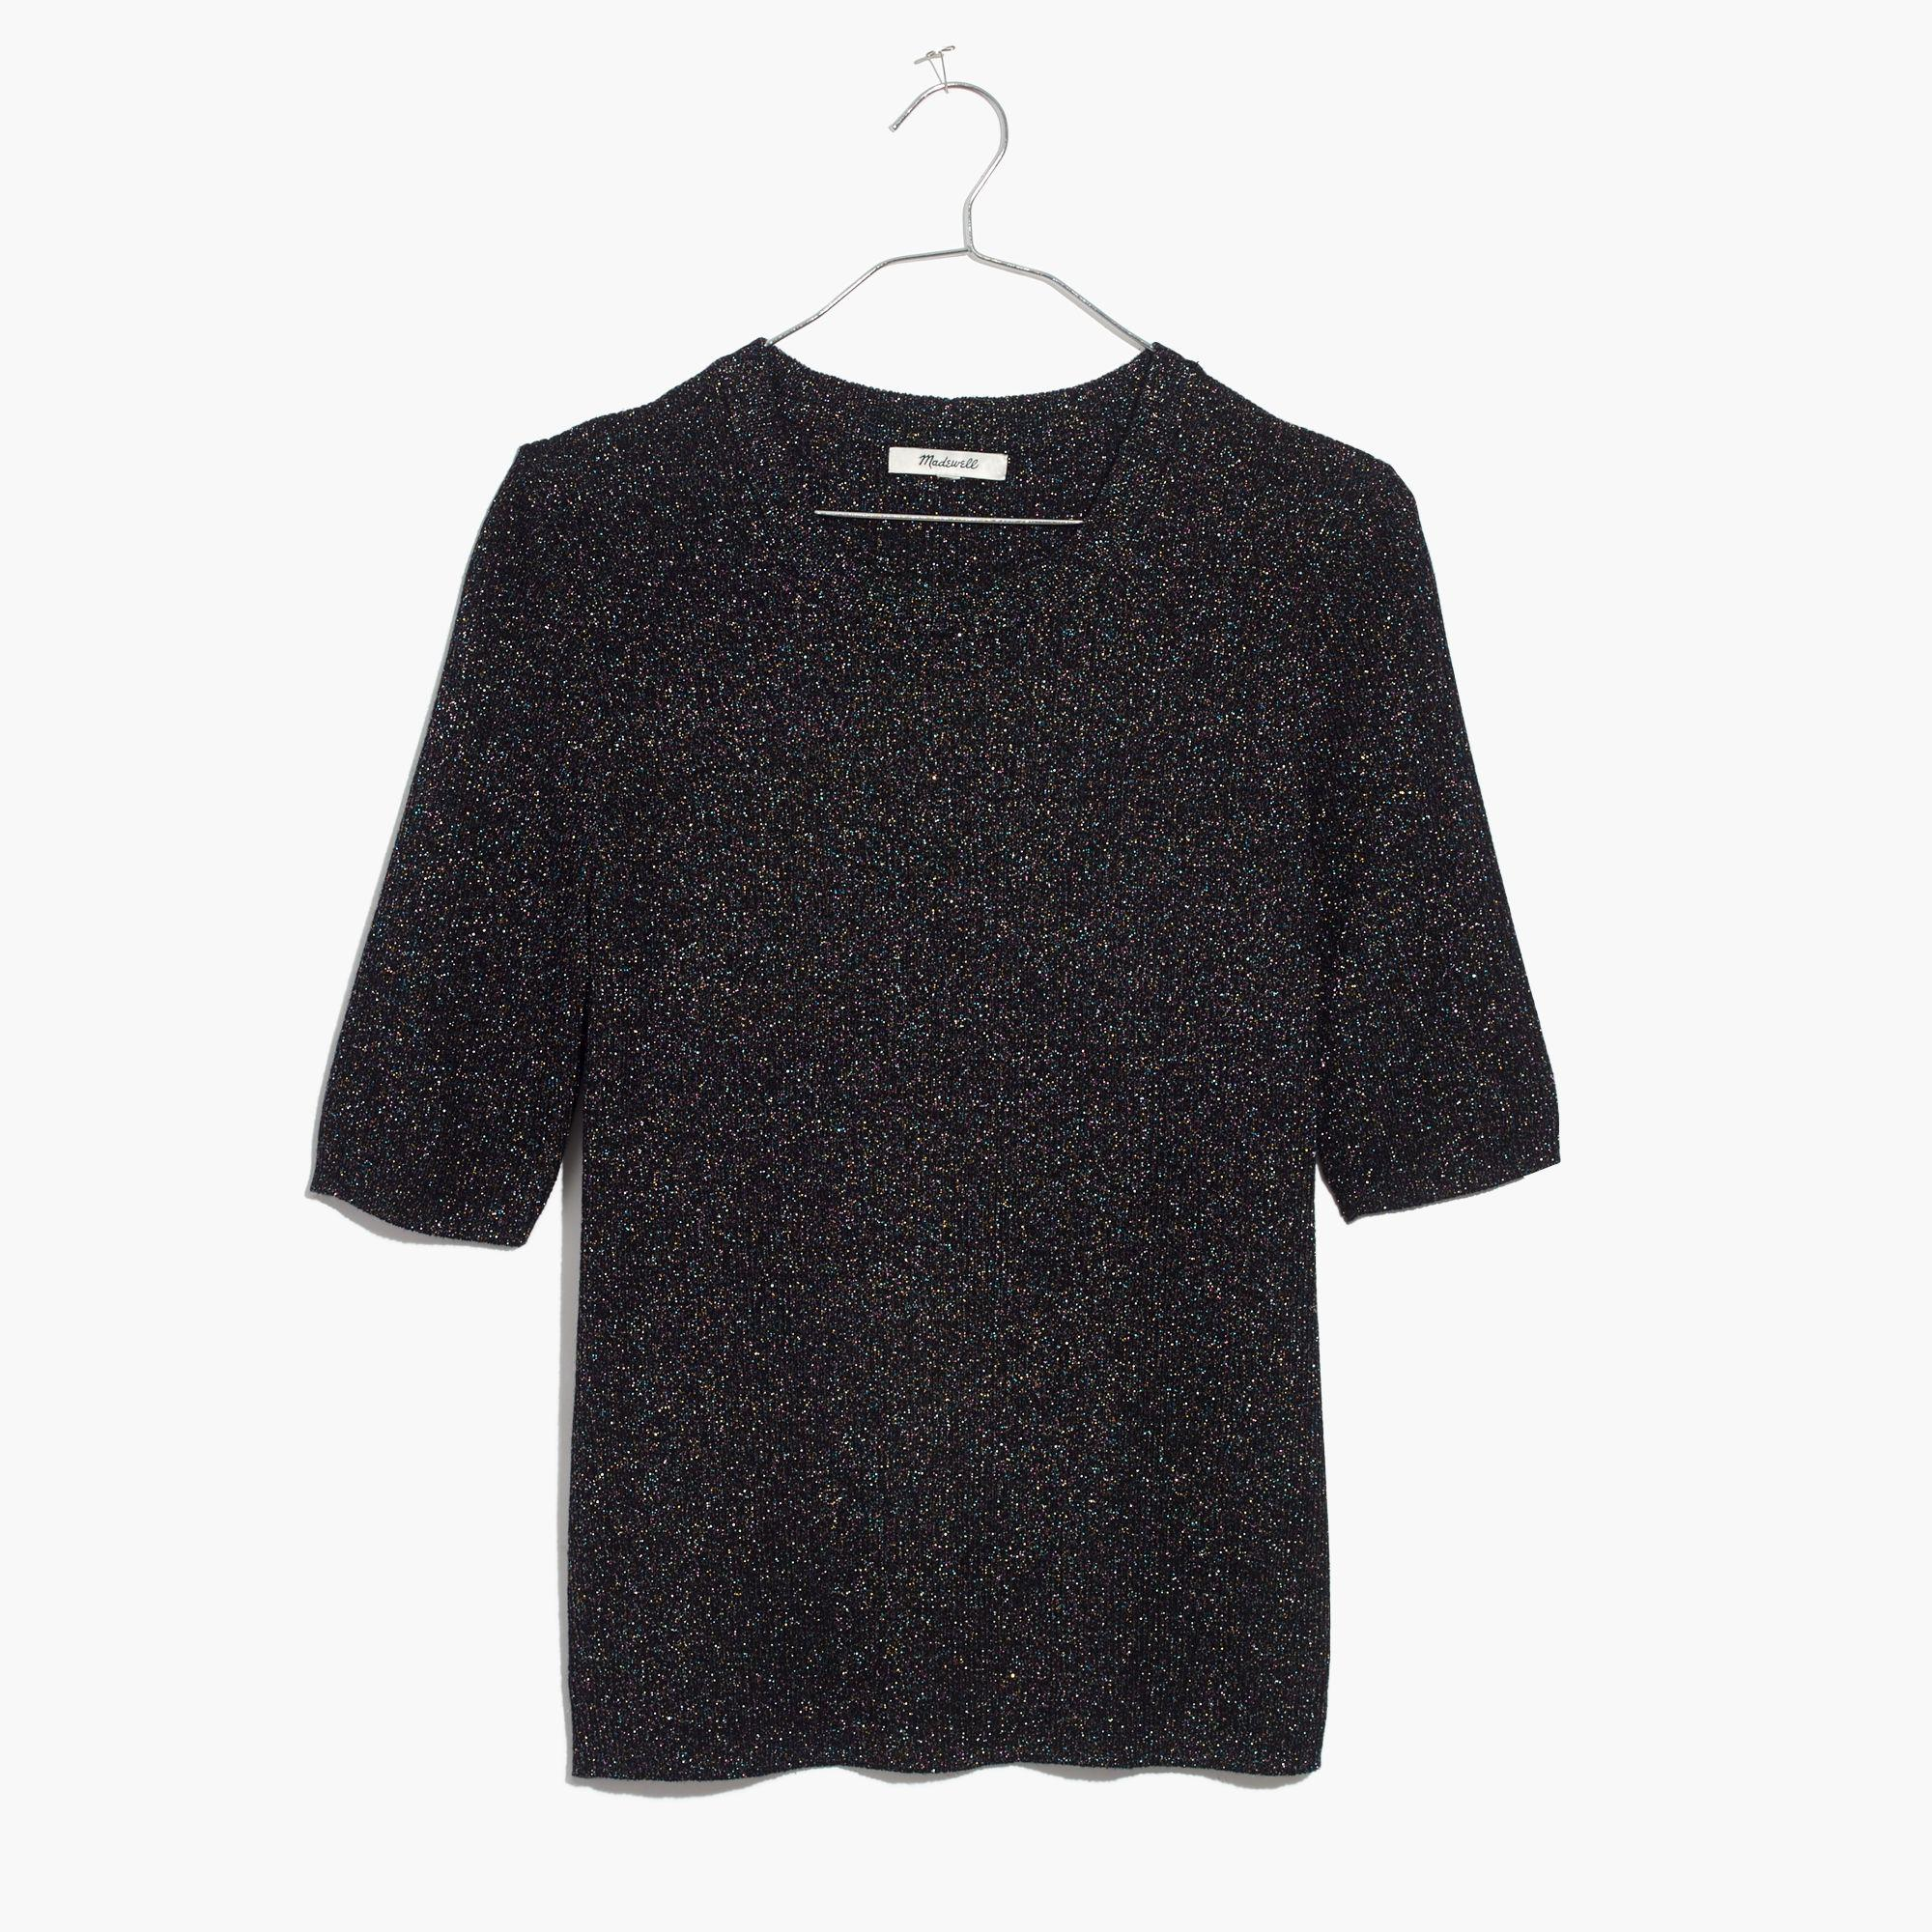 Madewell Evening Sparkle Ribbed Sweater Top in Black | Lyst